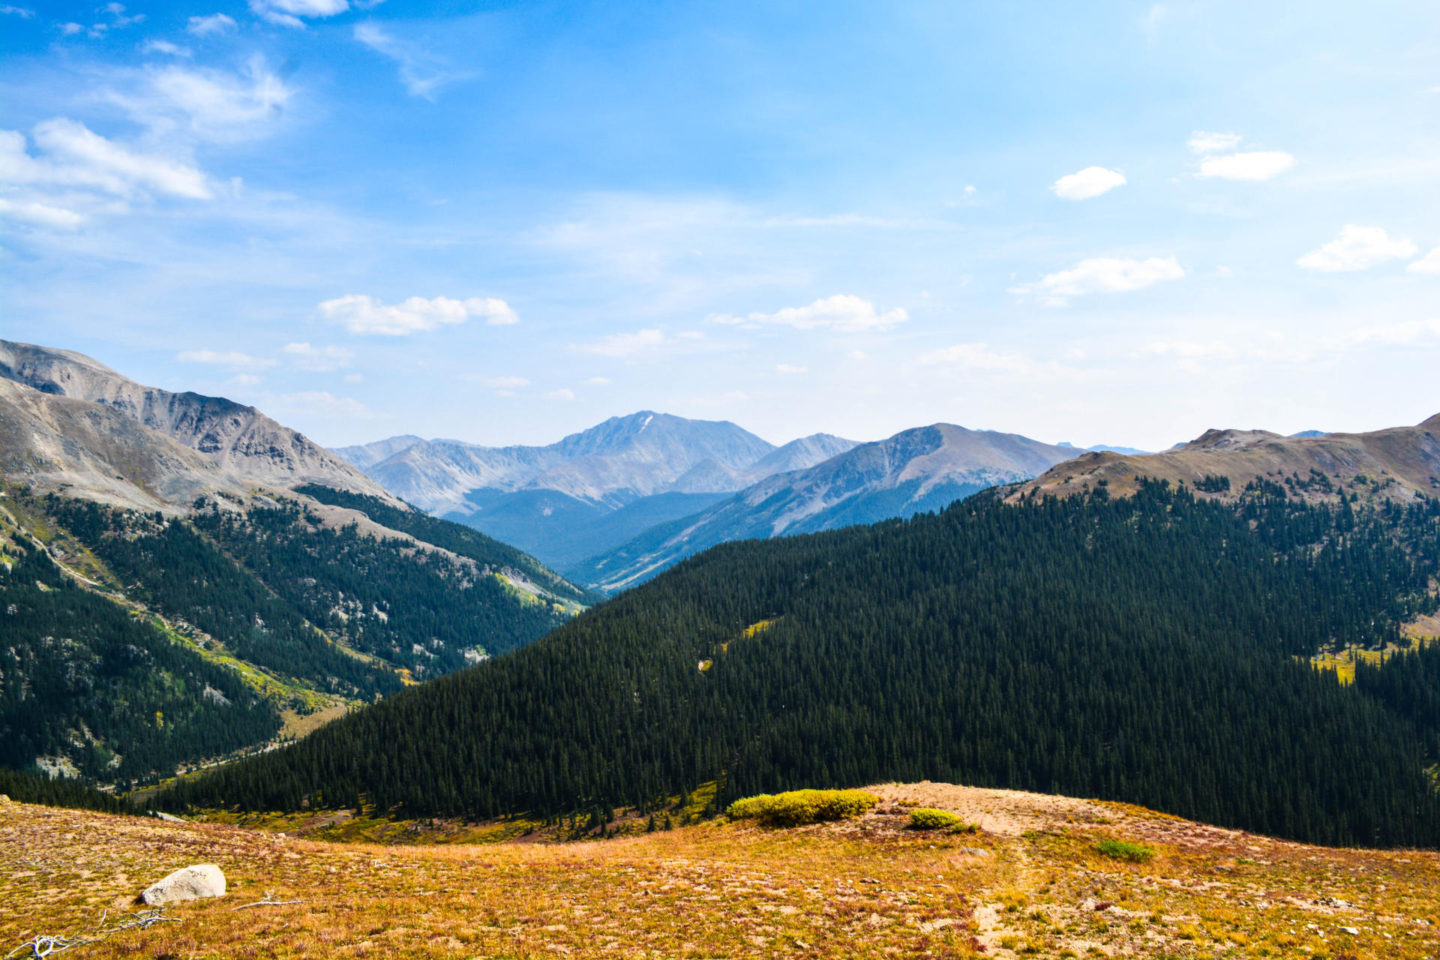 View from the lookout point at Independence Pass